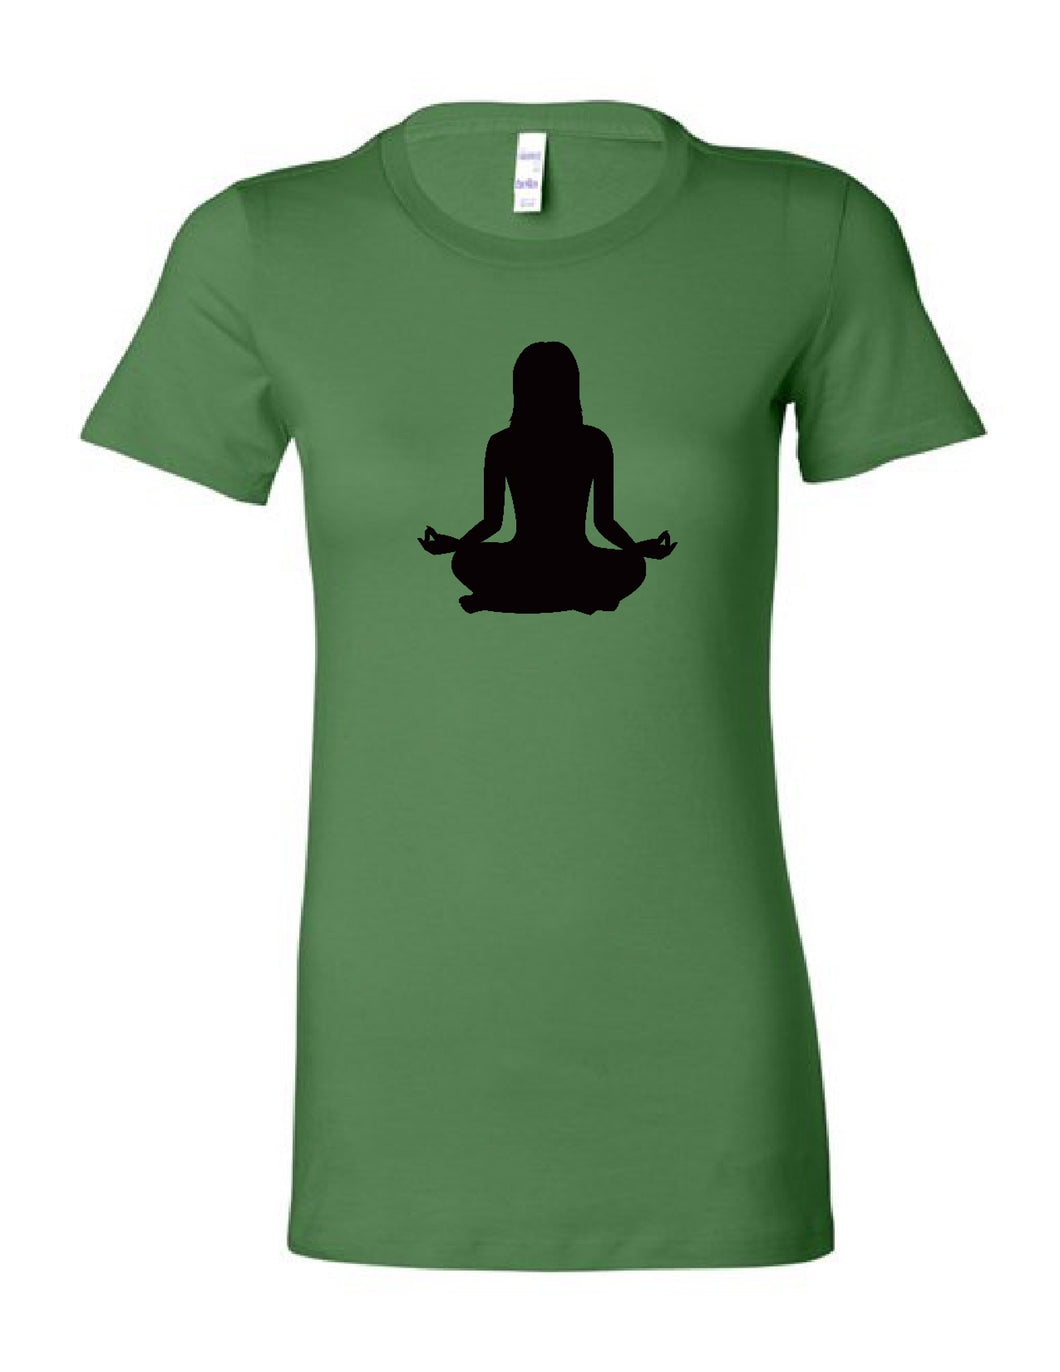 Om Yoga Chick Slim Fit Women's T-Shirt - Chick 9 Clothing